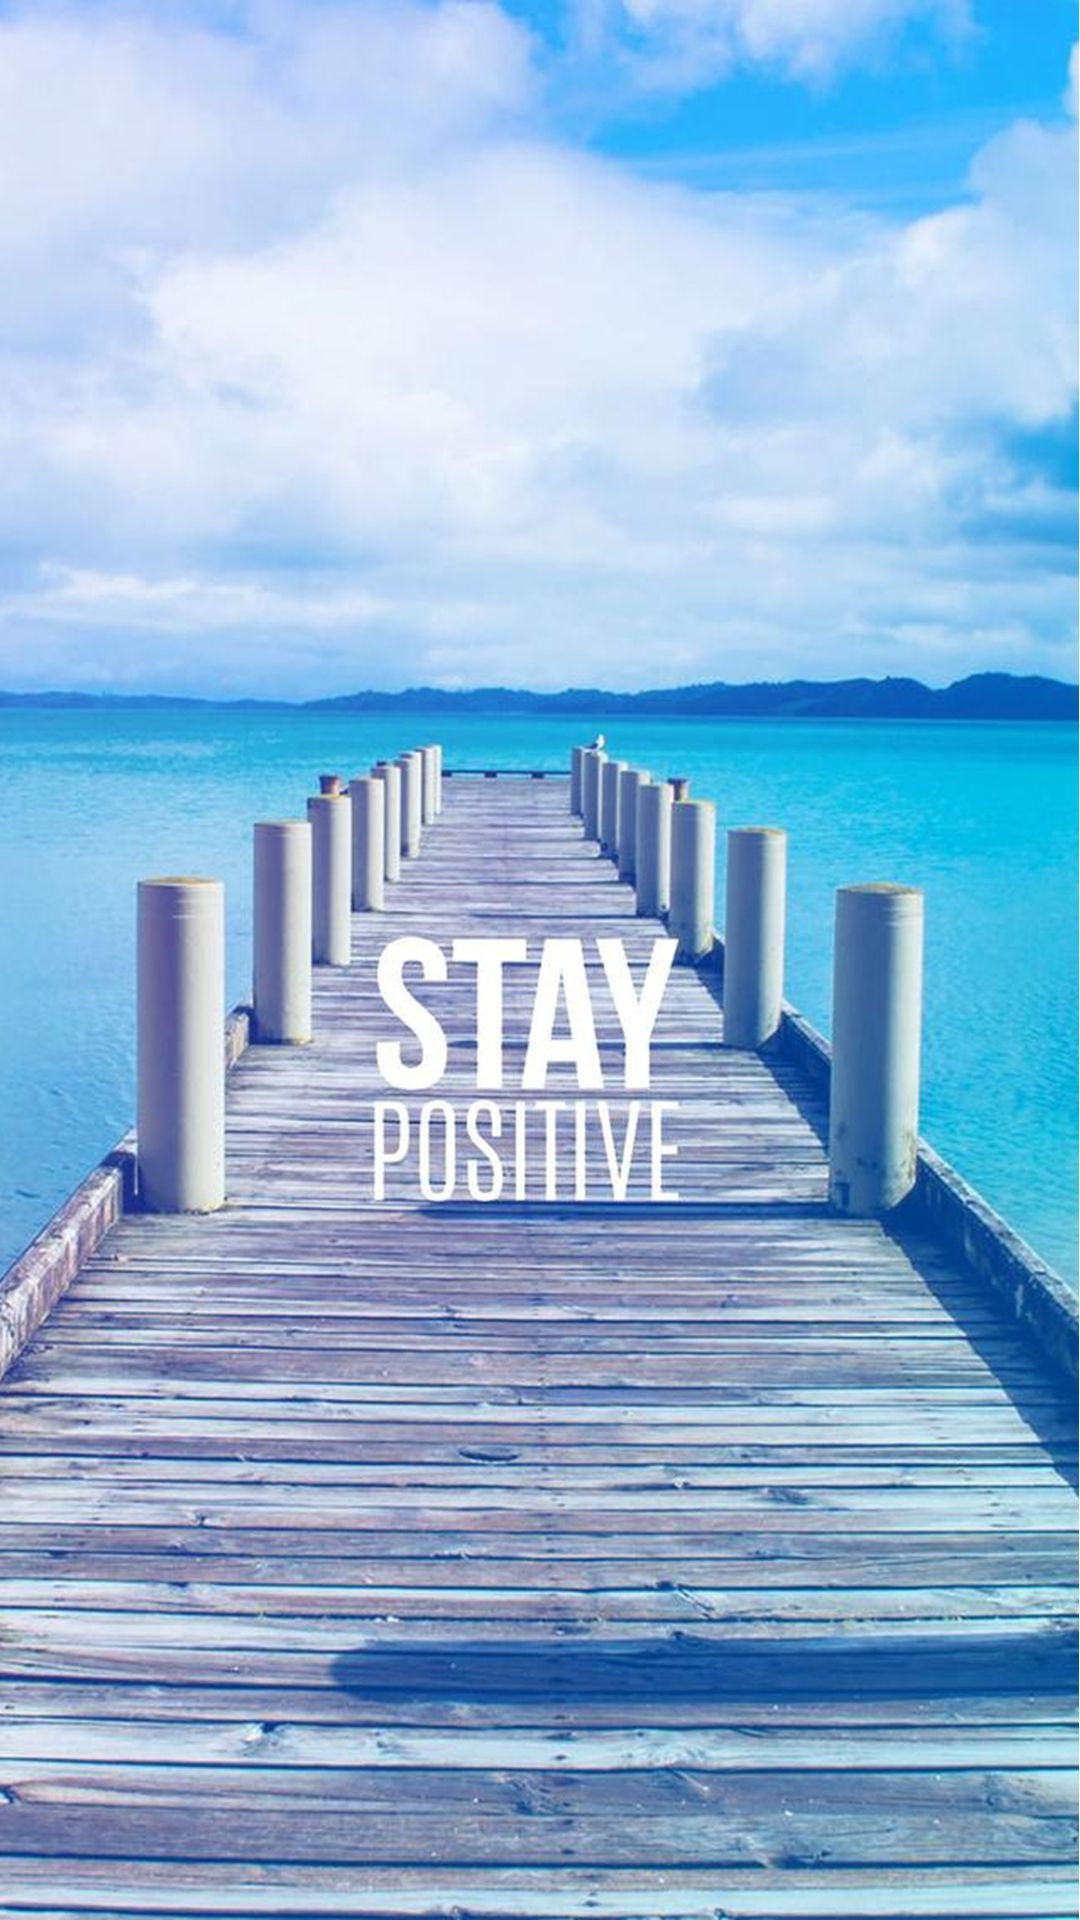 Captivating Stay Positive Motivational IPhone 6 Wallpaper